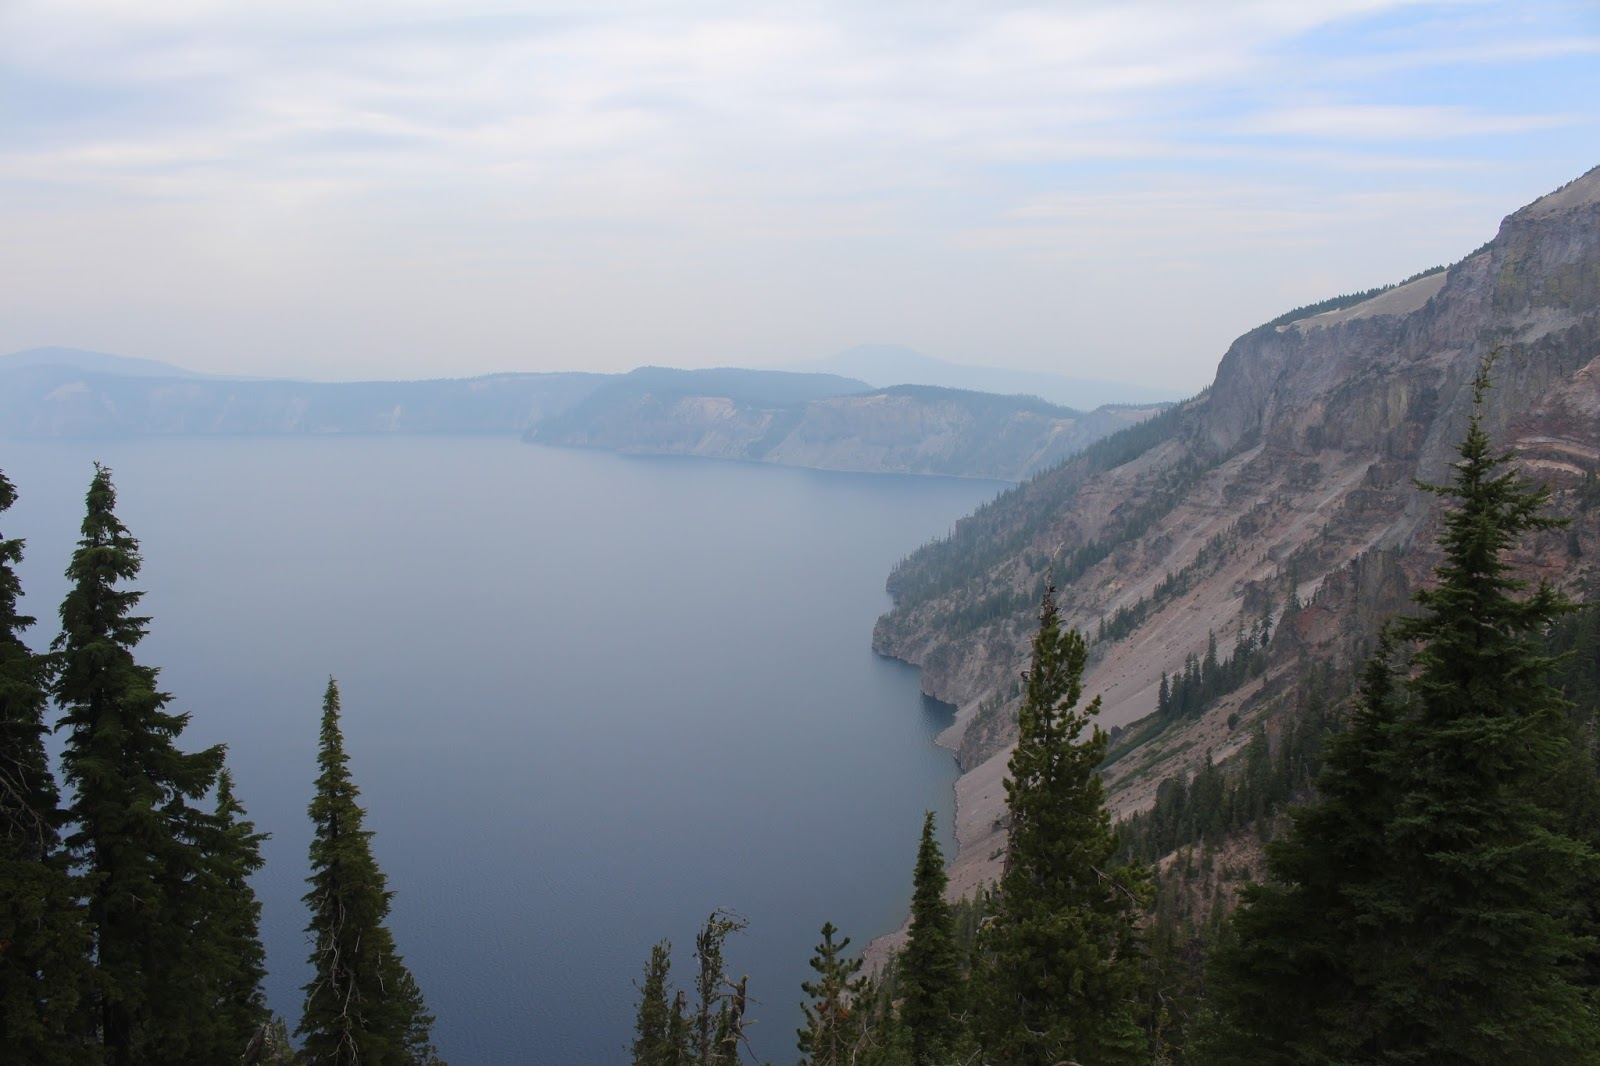 crater lake muslim single men St michael's golden-domed monastery (ukrainian: михайлівський золотоверхий монастир, mykhaylivs'kyi zolotoverkhyi monastyr) is a functioning monastery in kiev, the capital of ukrainethe monastery is located on the right bank of the dnieper river on the edge of a bluff northeast of the saint sophia cathedralthe site is located in the.